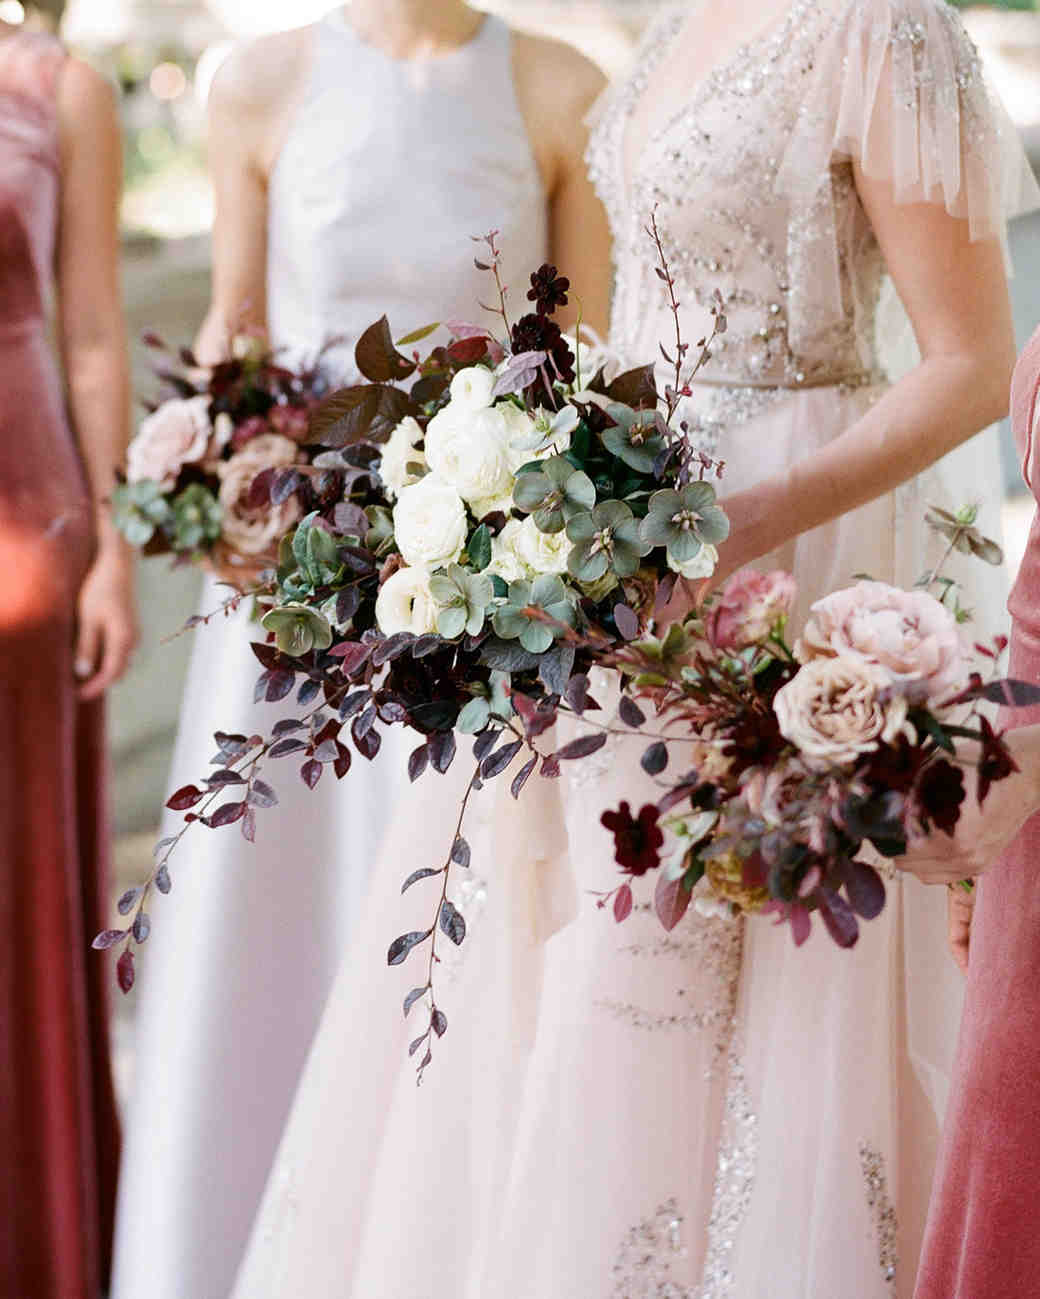 nature color scheme bouquet with pops of plum blooms and greenery